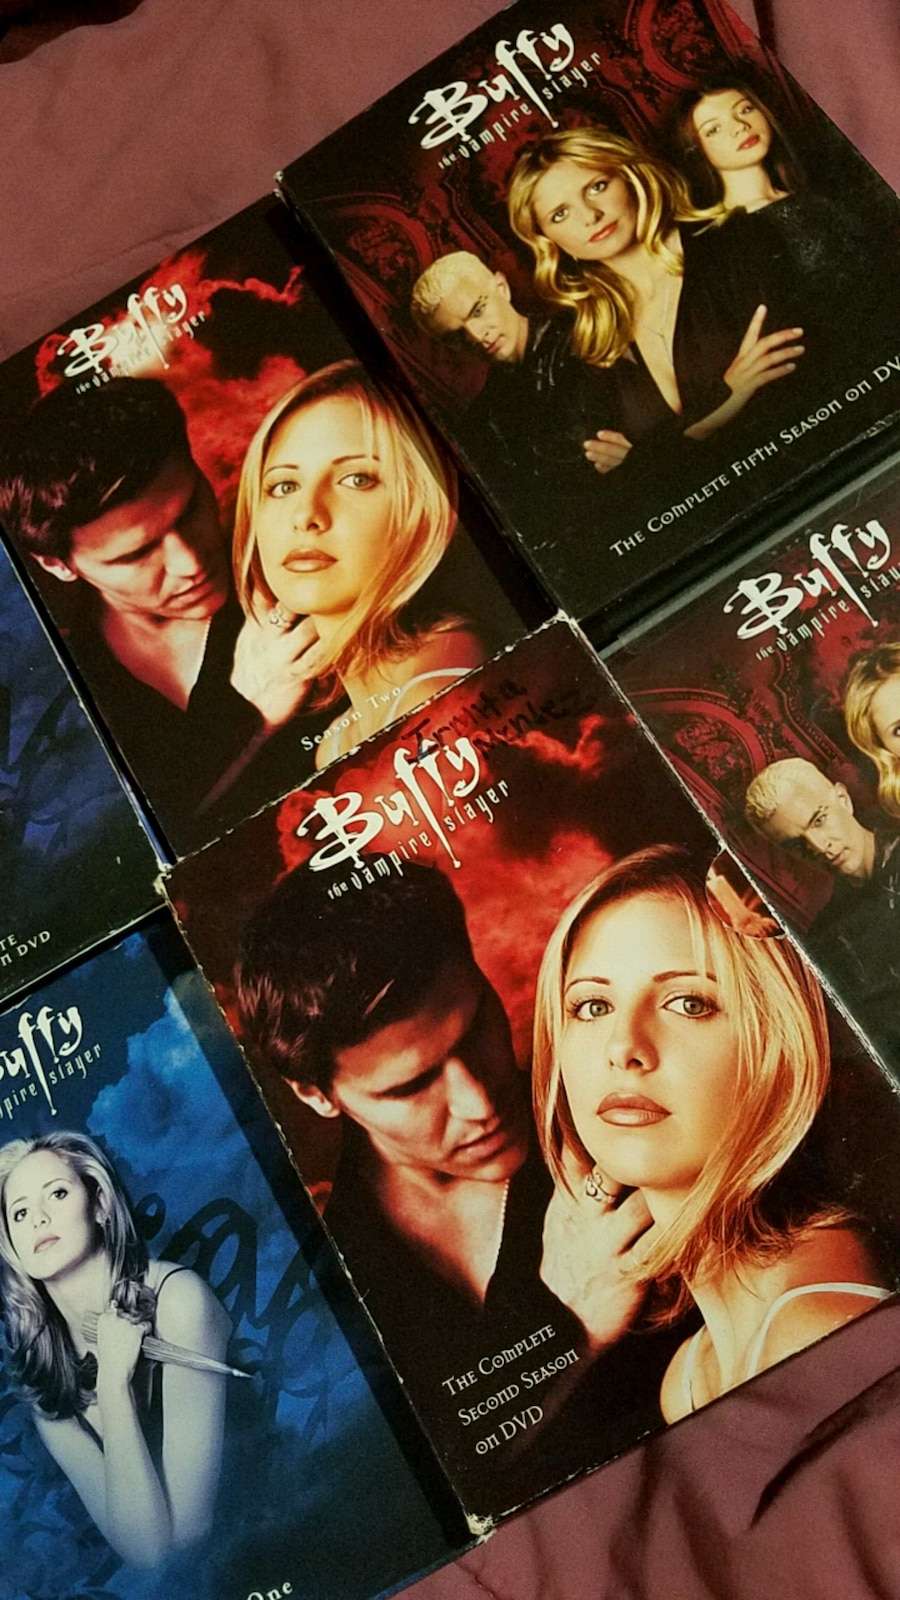 Buffy The Vampire Slayer Actors Keyring 16 Actors available.